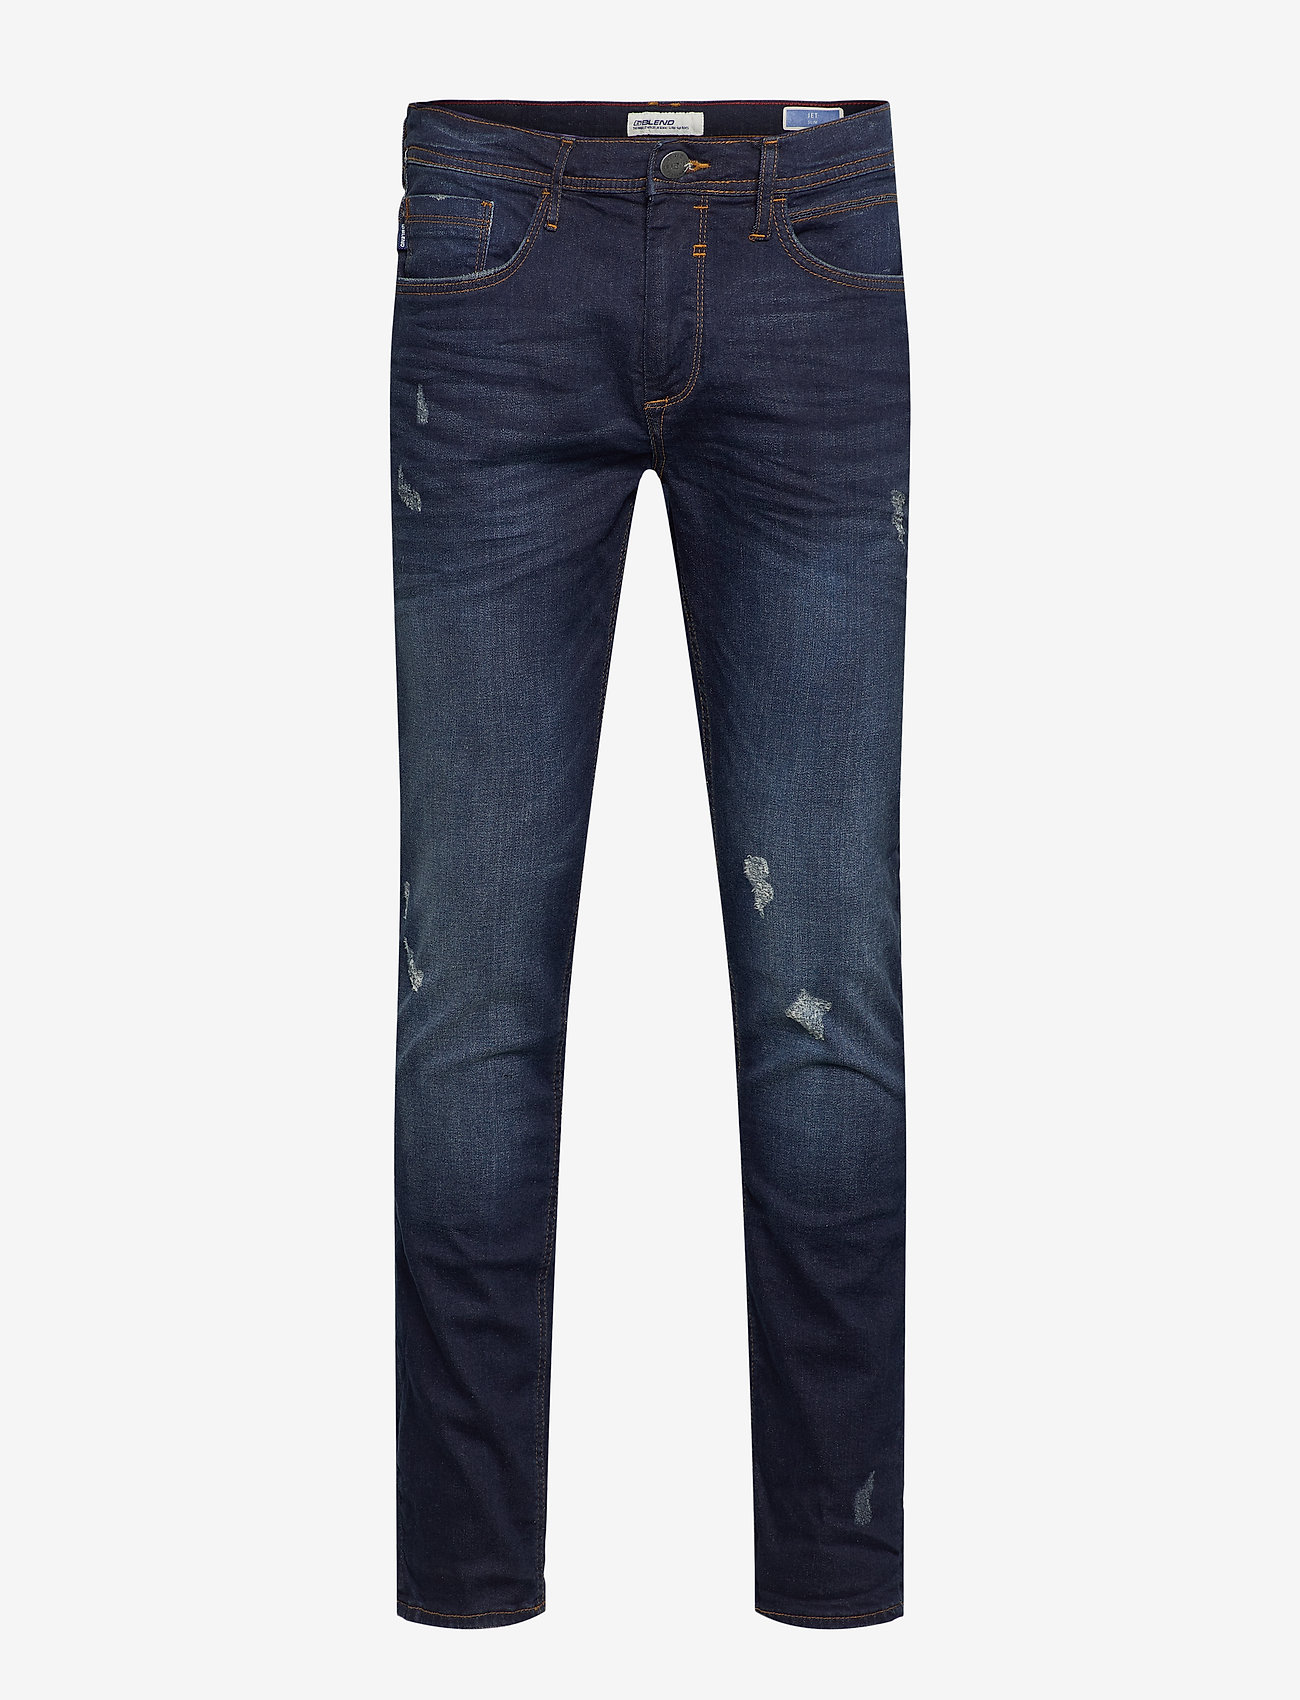 Blend - Jet fit - Scratches - regular jeans - denim dark blue - 0